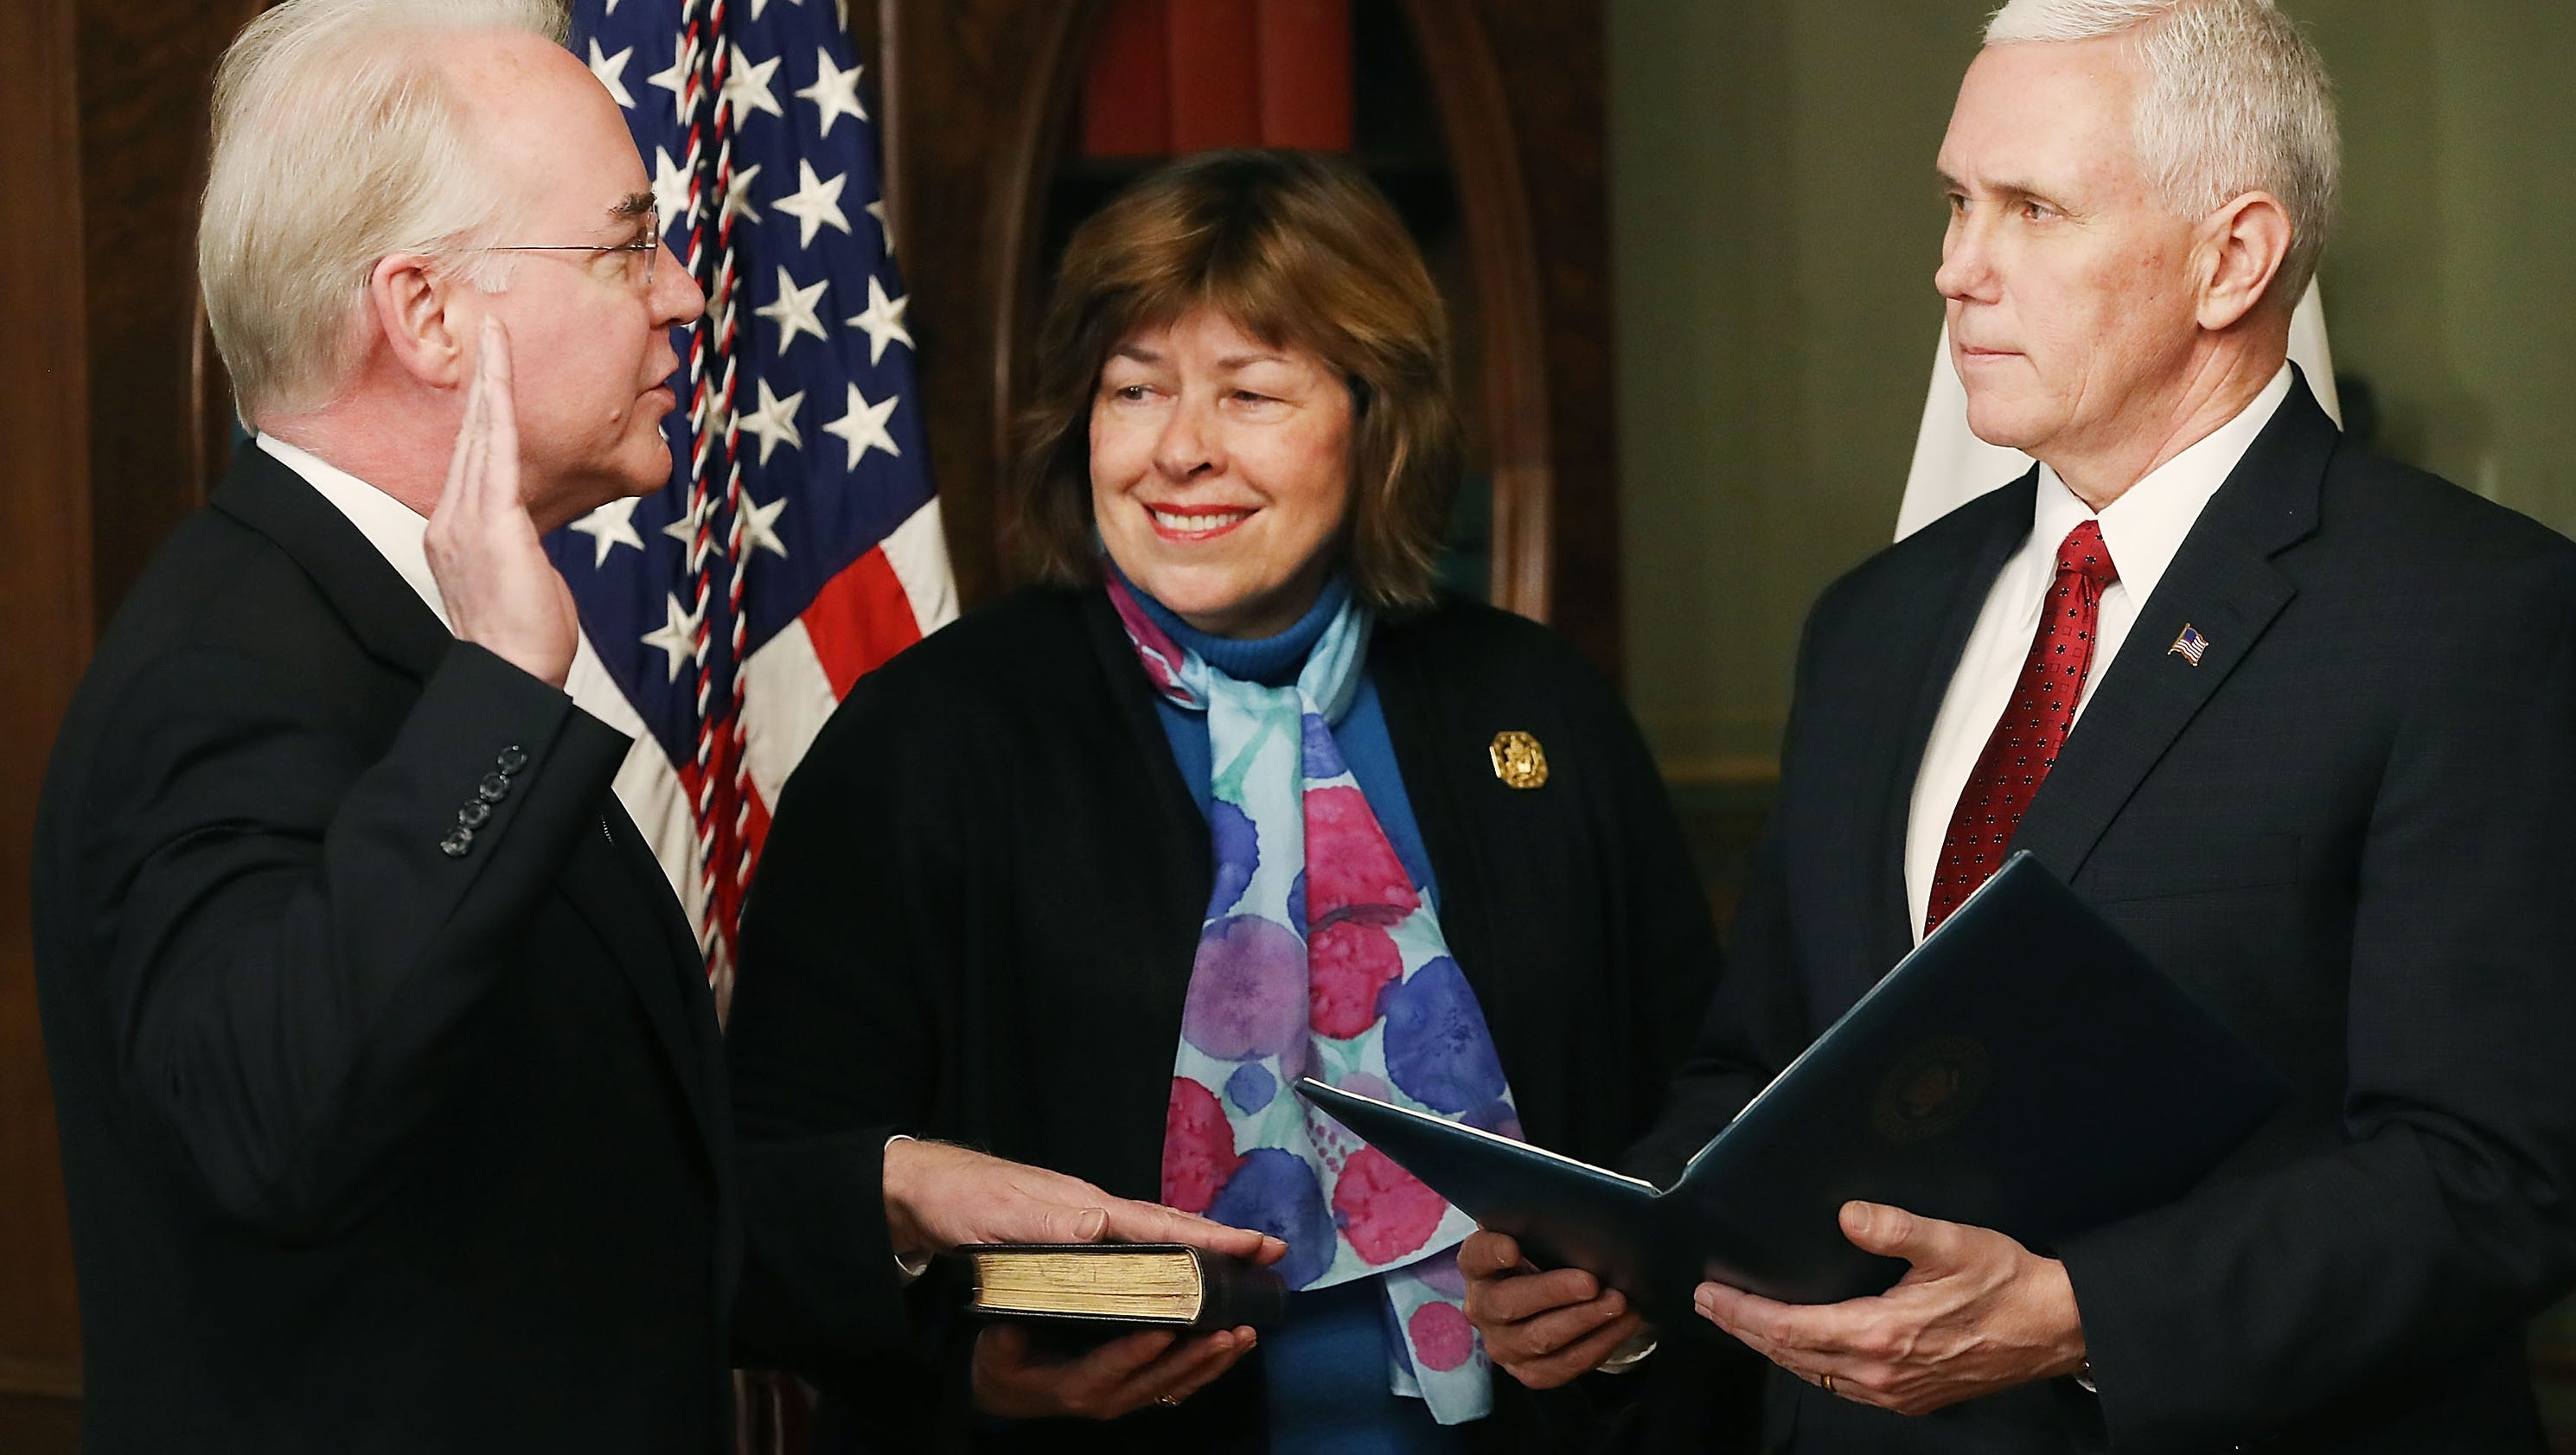 Tom Price's wife asks about 'legally' quarantining HIV patients